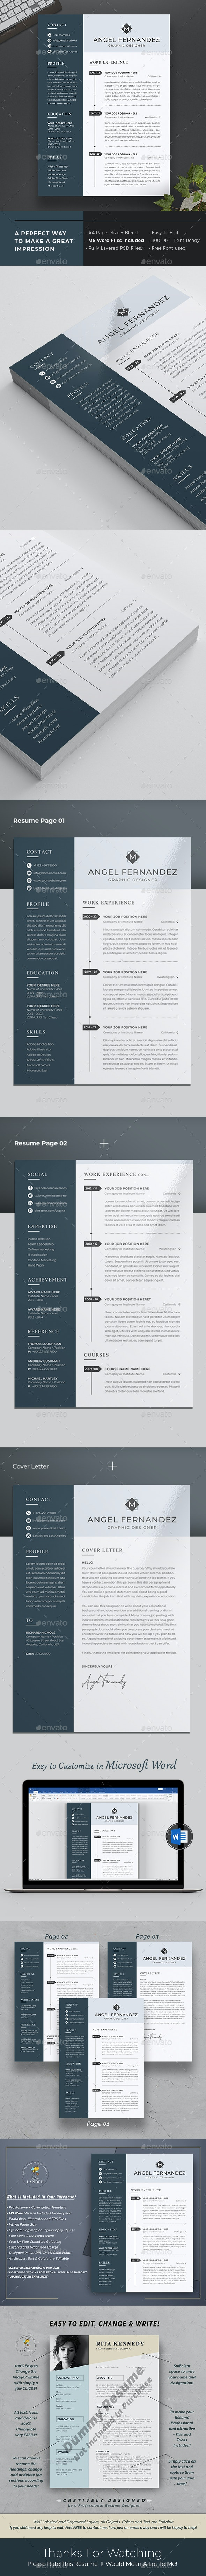 Resume website for sale pay to write top dissertation abstract online